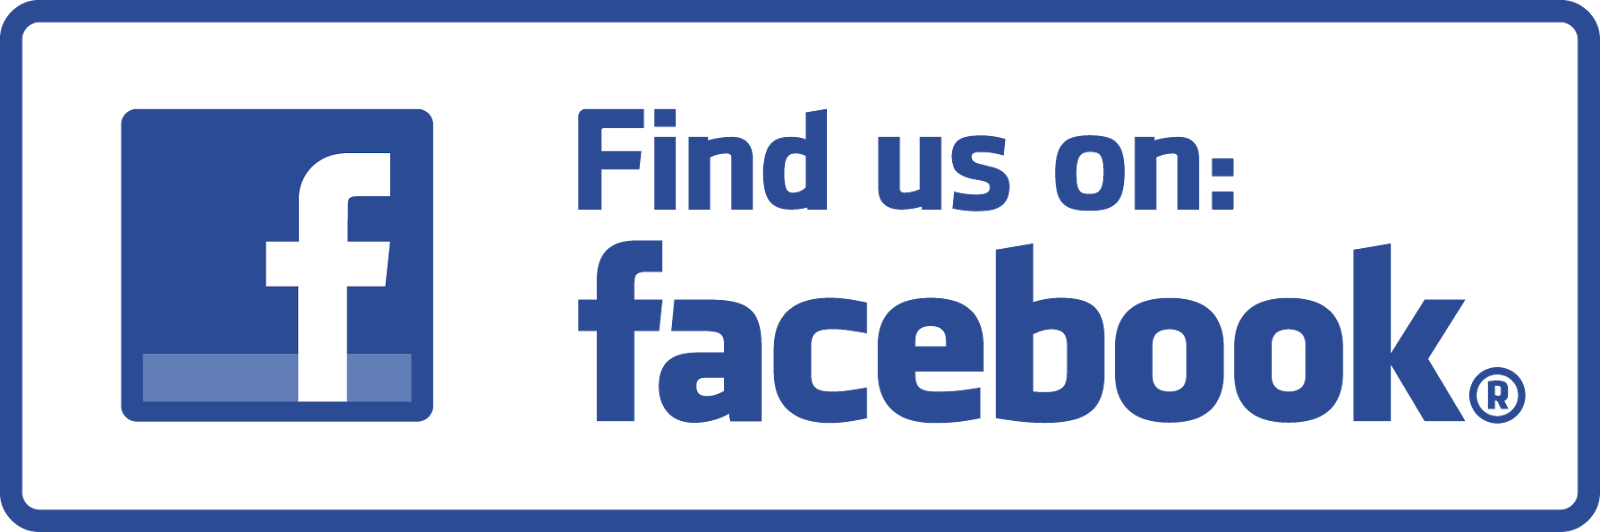 Follow Team Anadyr on Facebook!